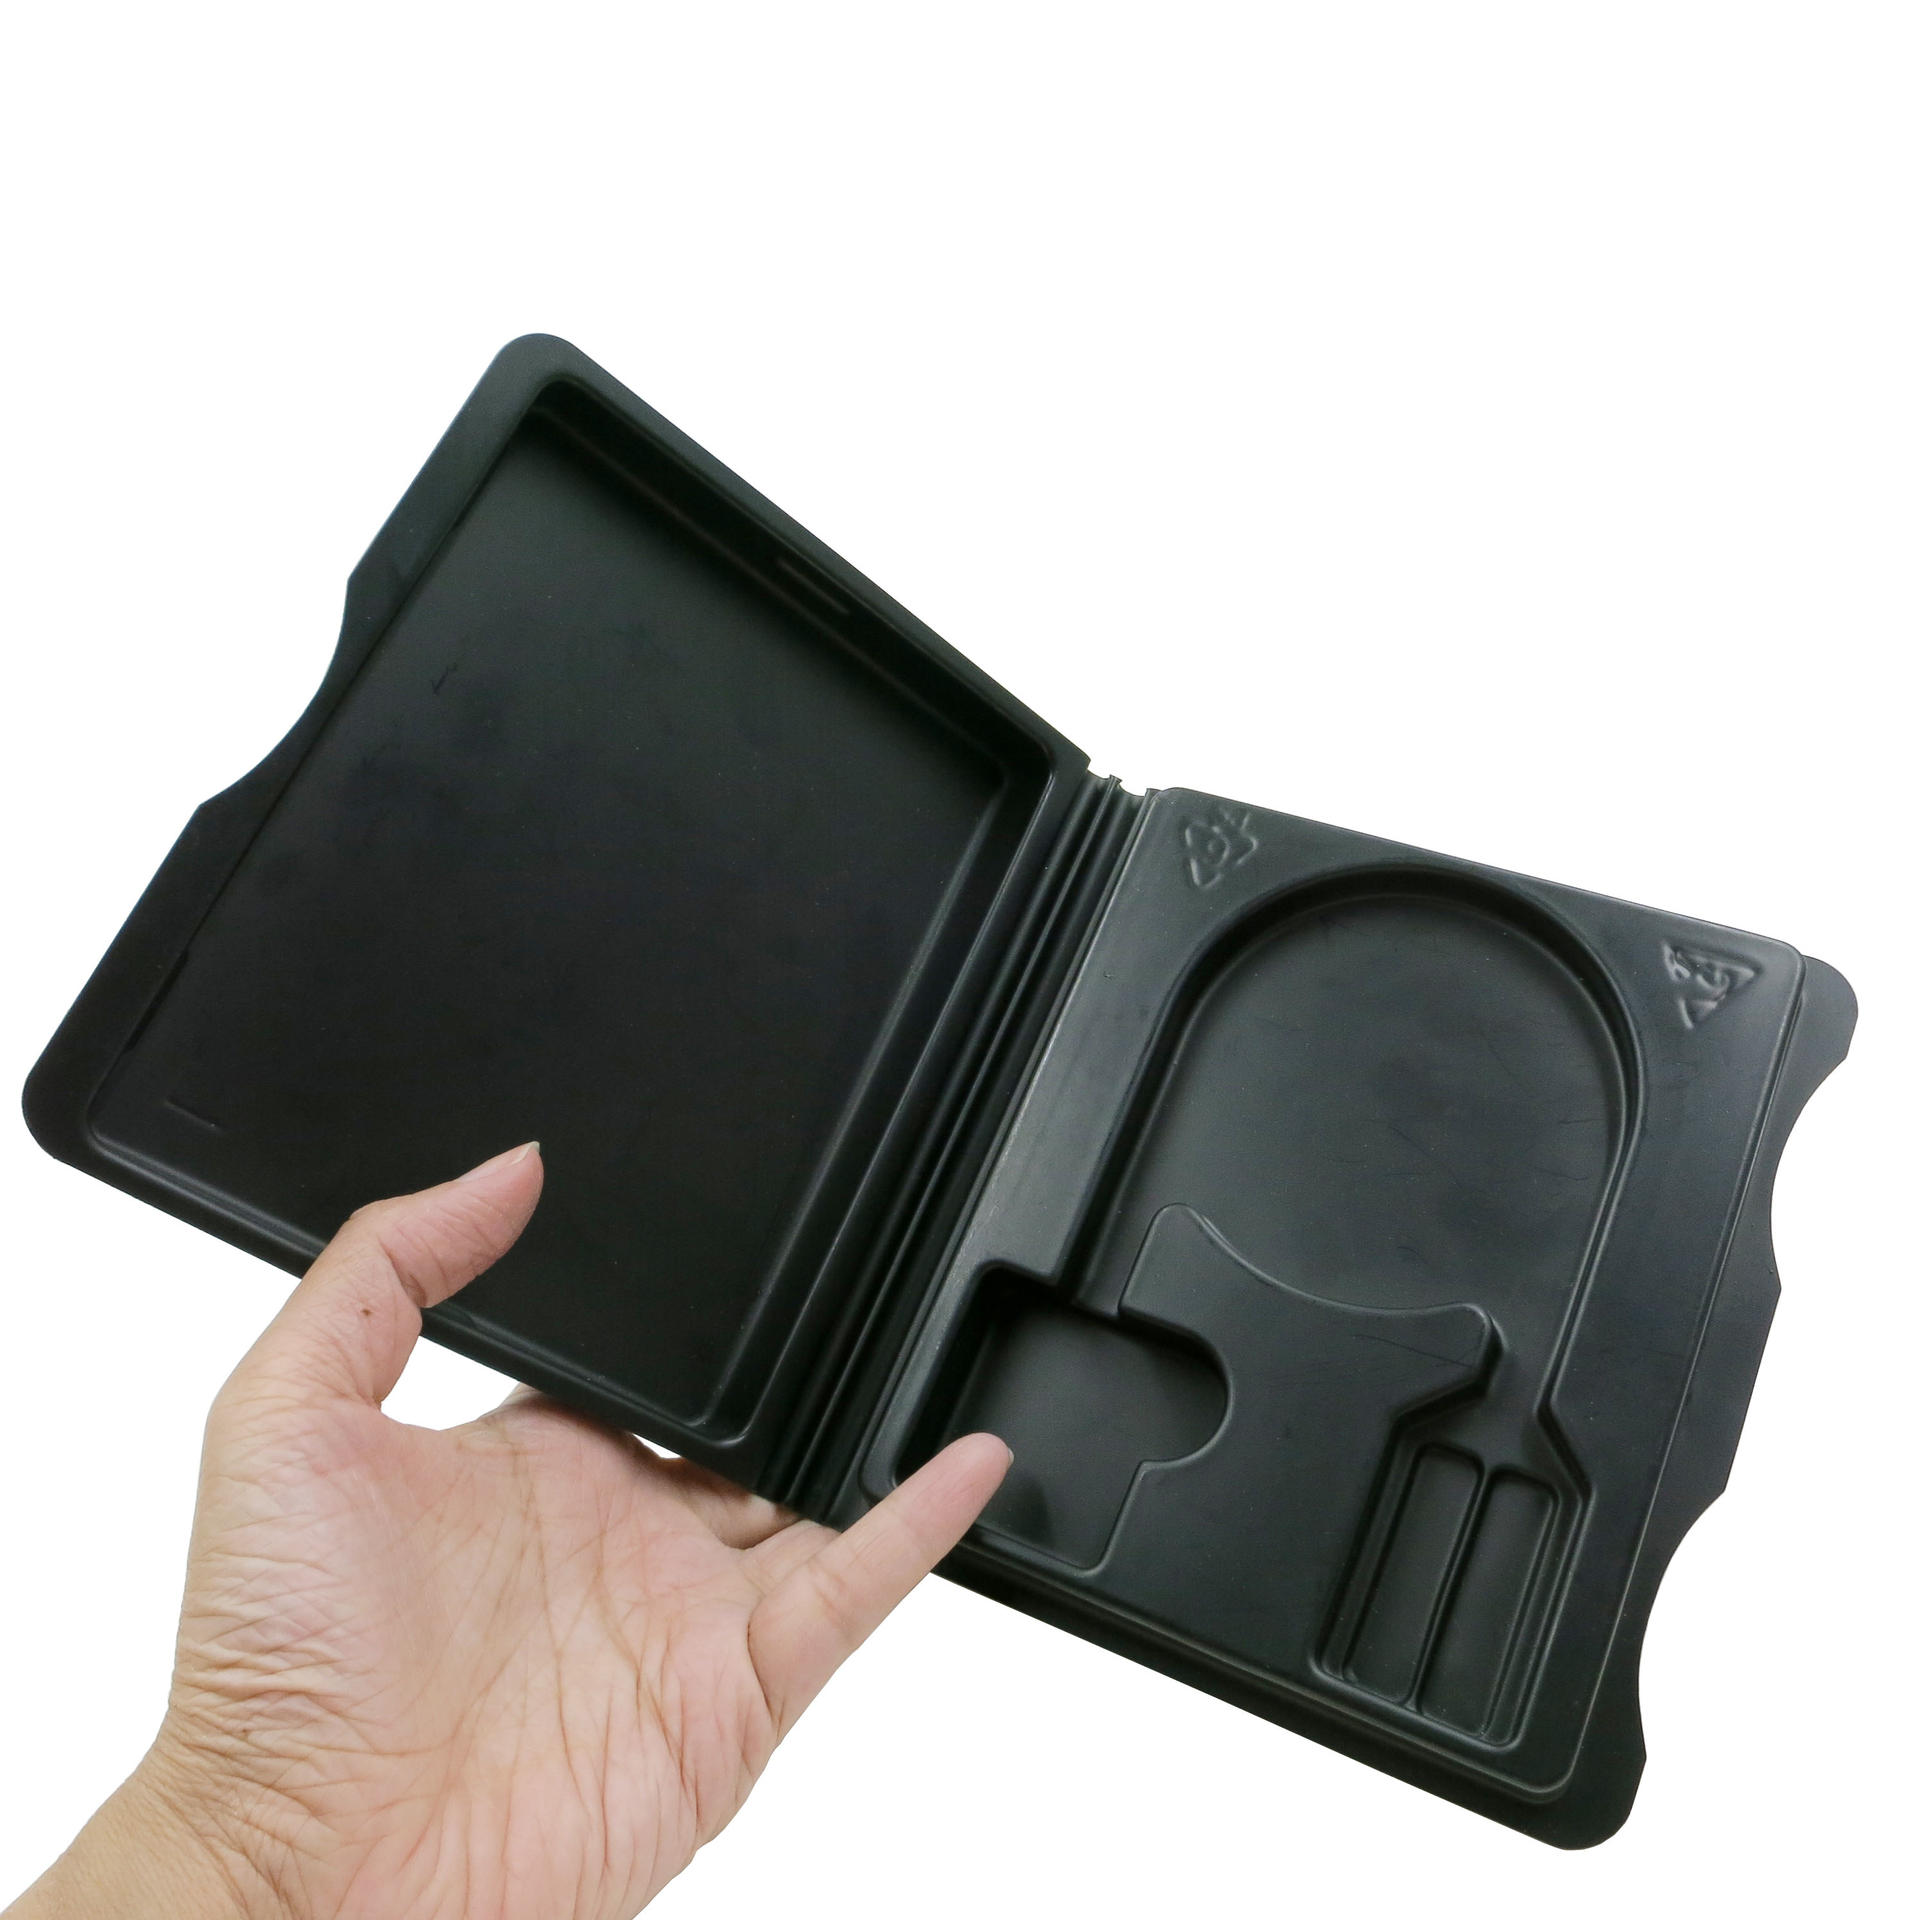 Matte Black Plastic Vacuum Forming Packaging Box